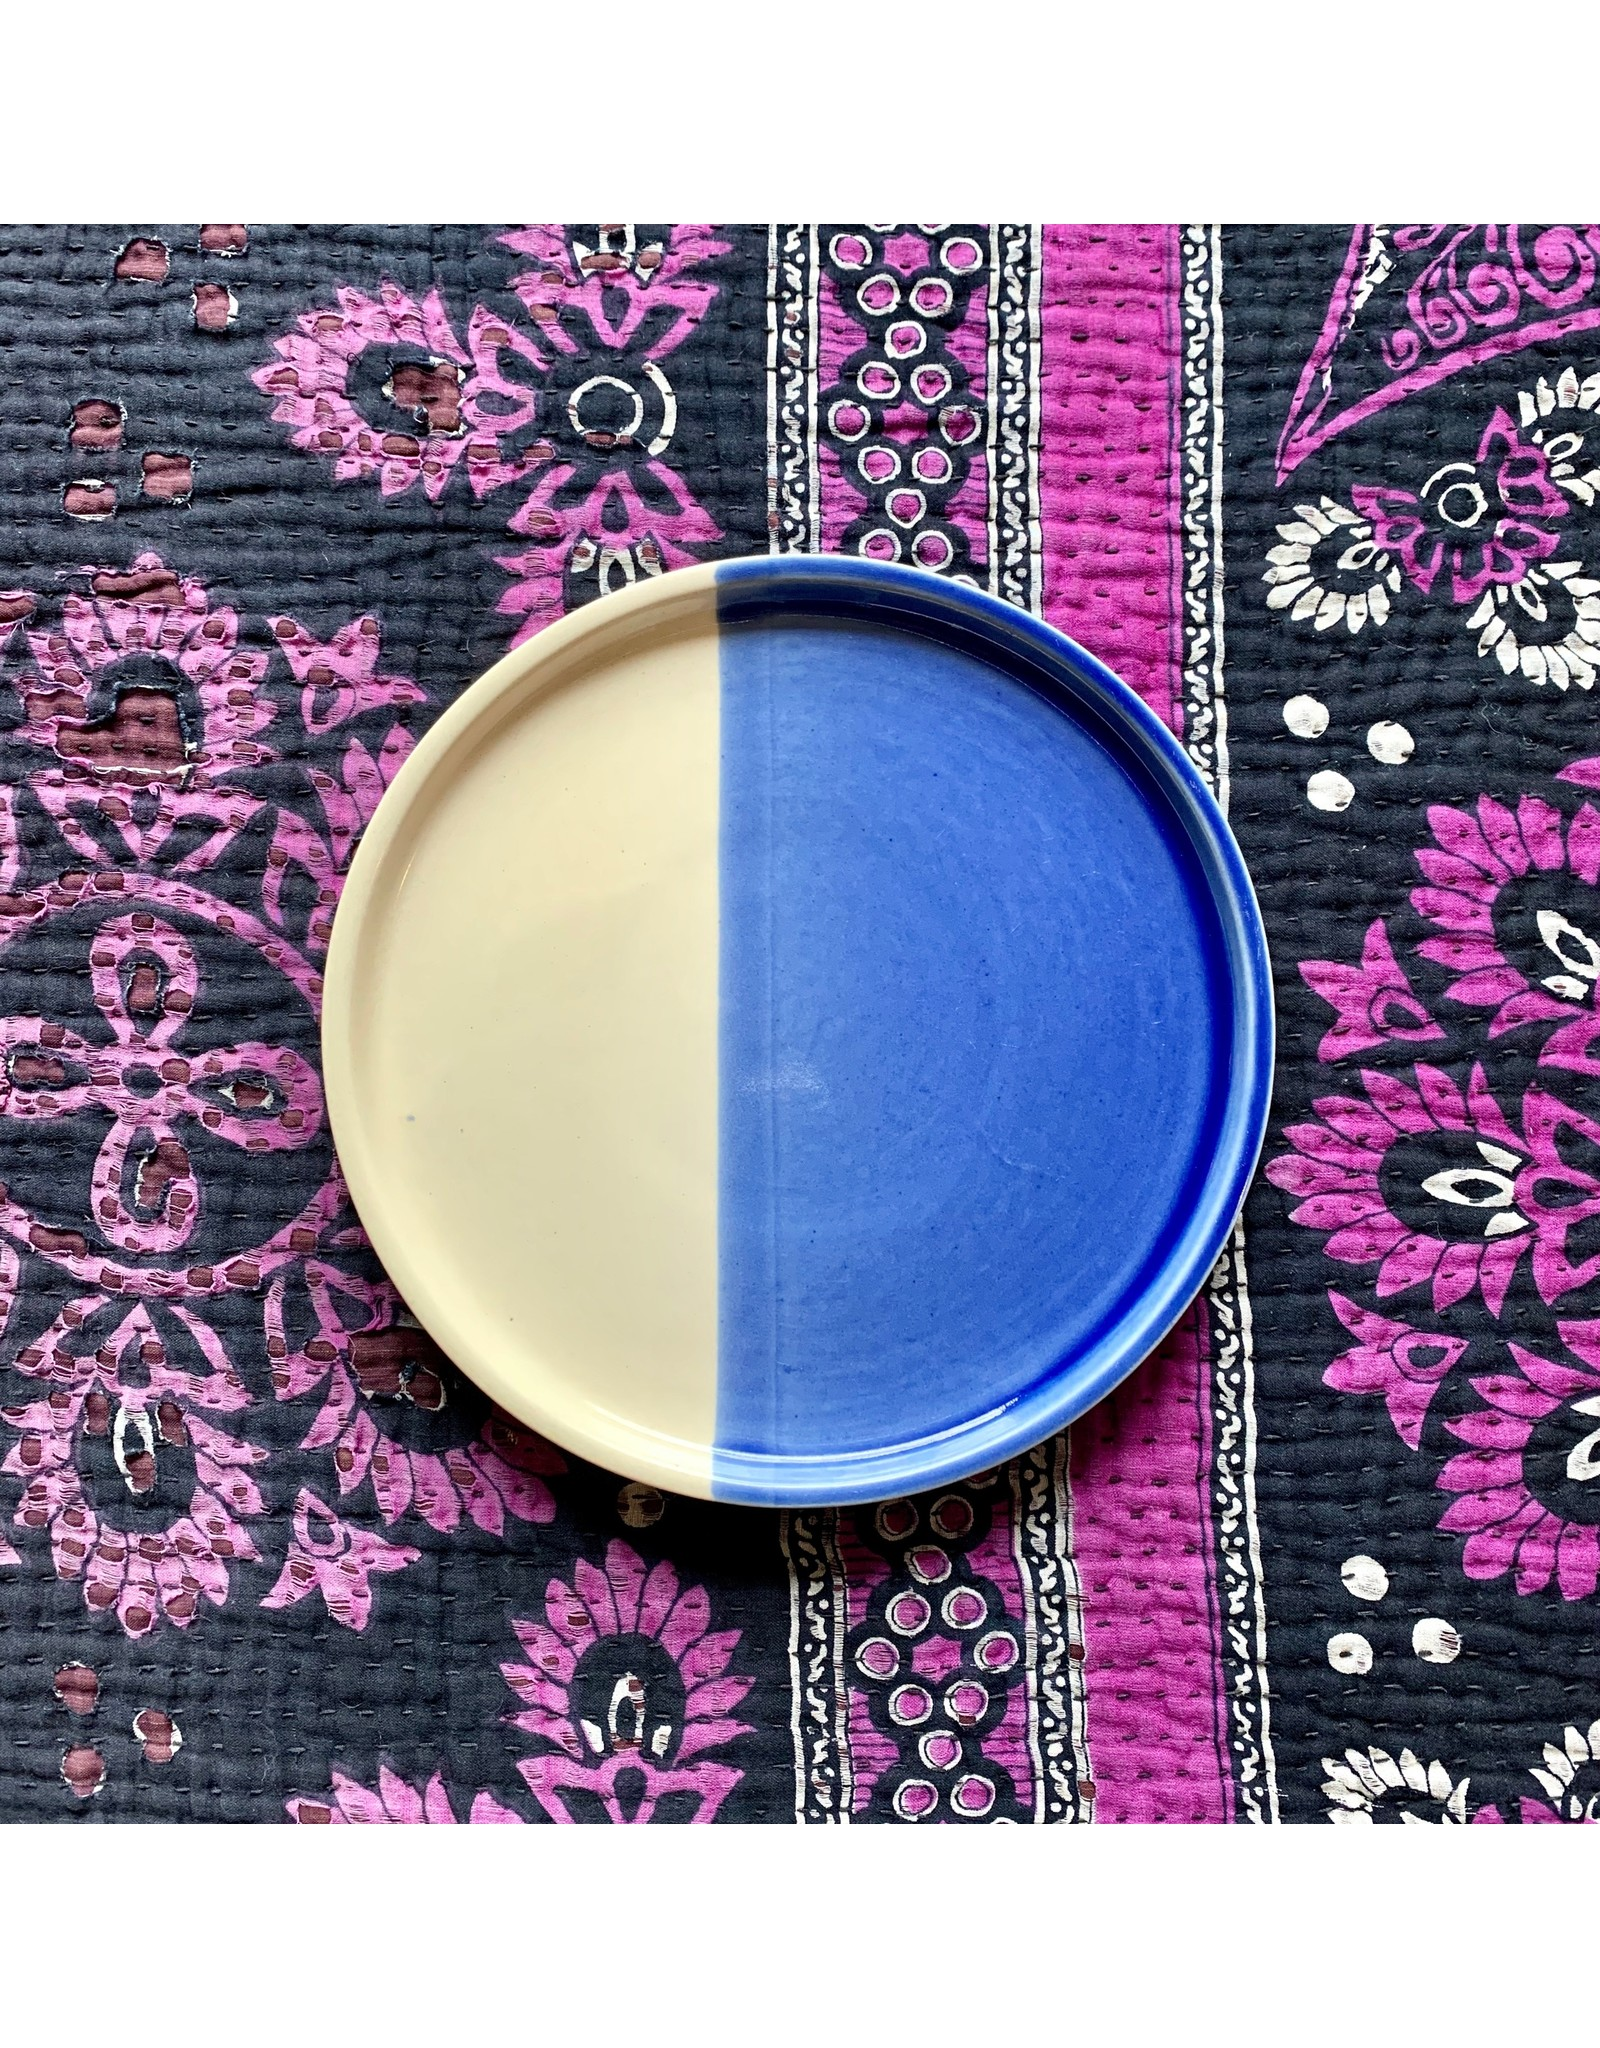 Ten Thousand Villages Blue and White Ceramic Plate